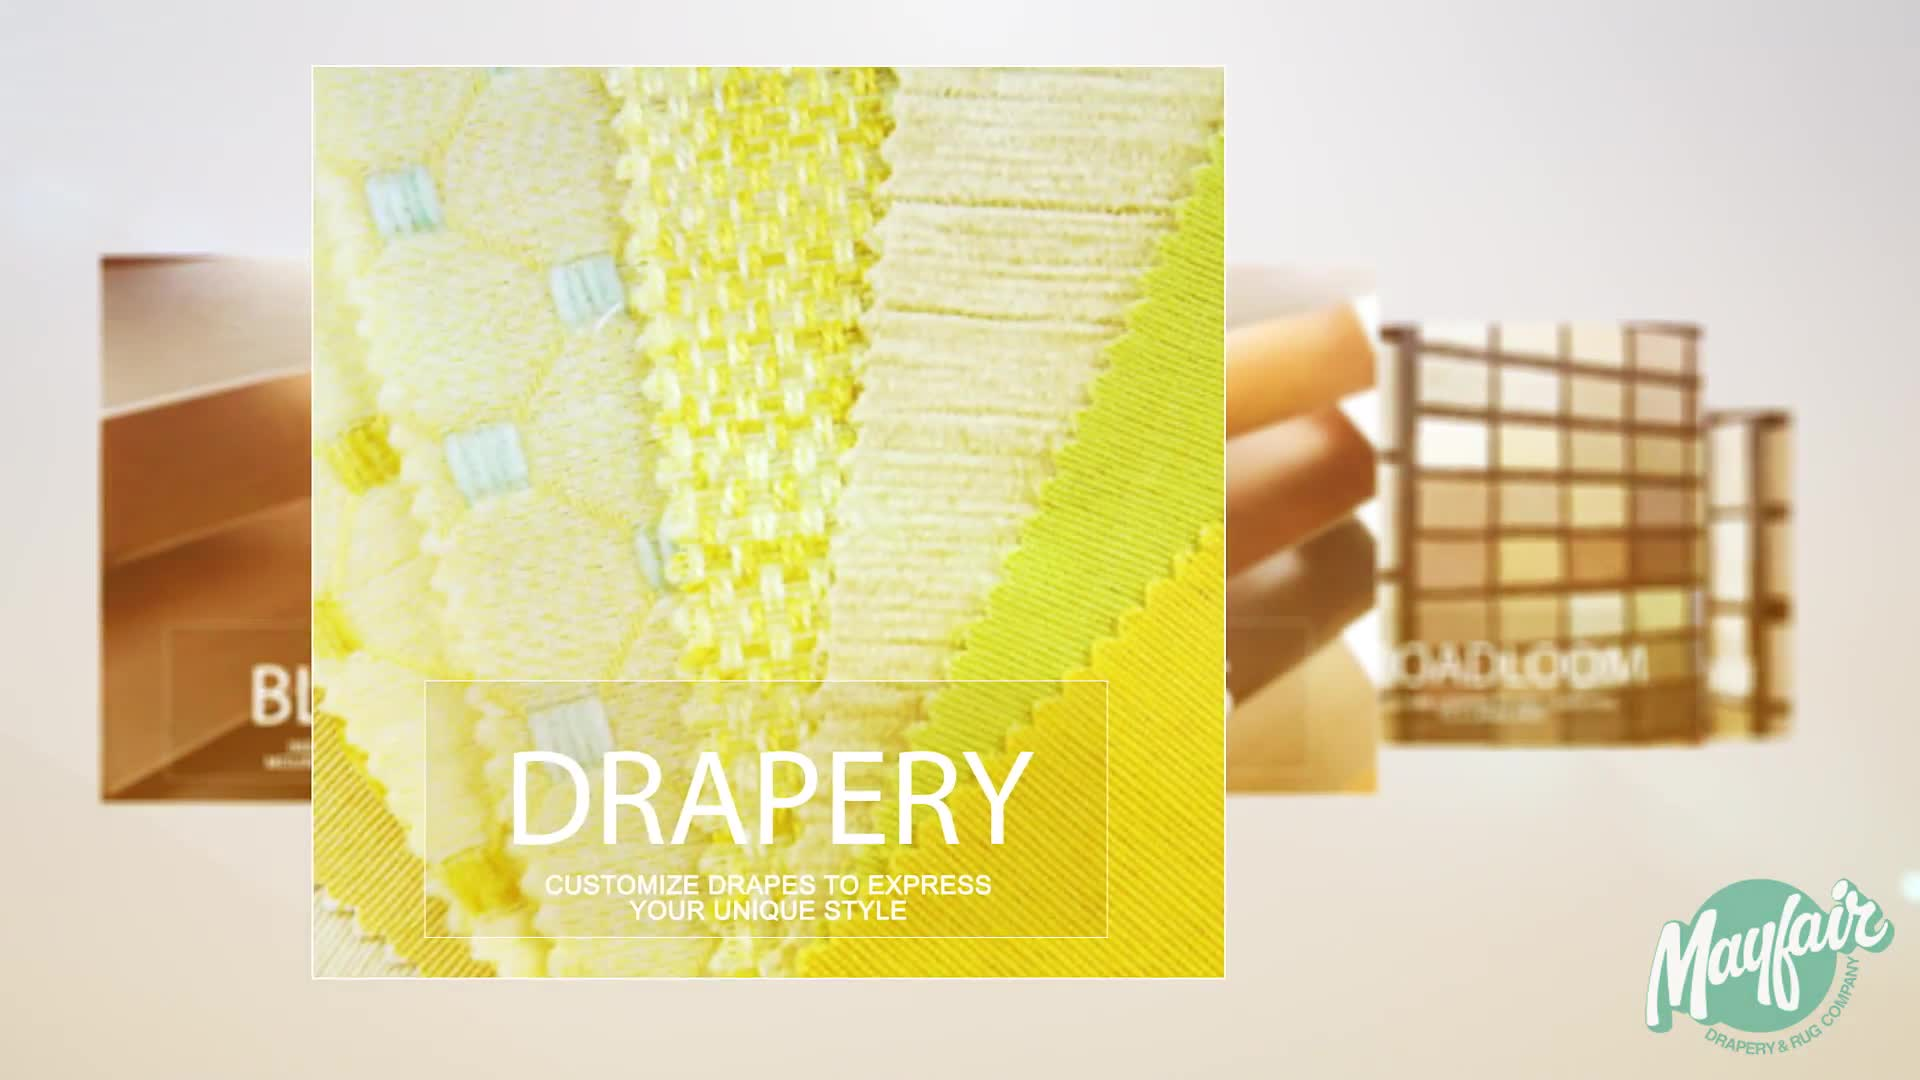 Mayfair Drapery & Rug Co - Drapery & Curtain Manufacturers & Wholesalers - 416-661-2131